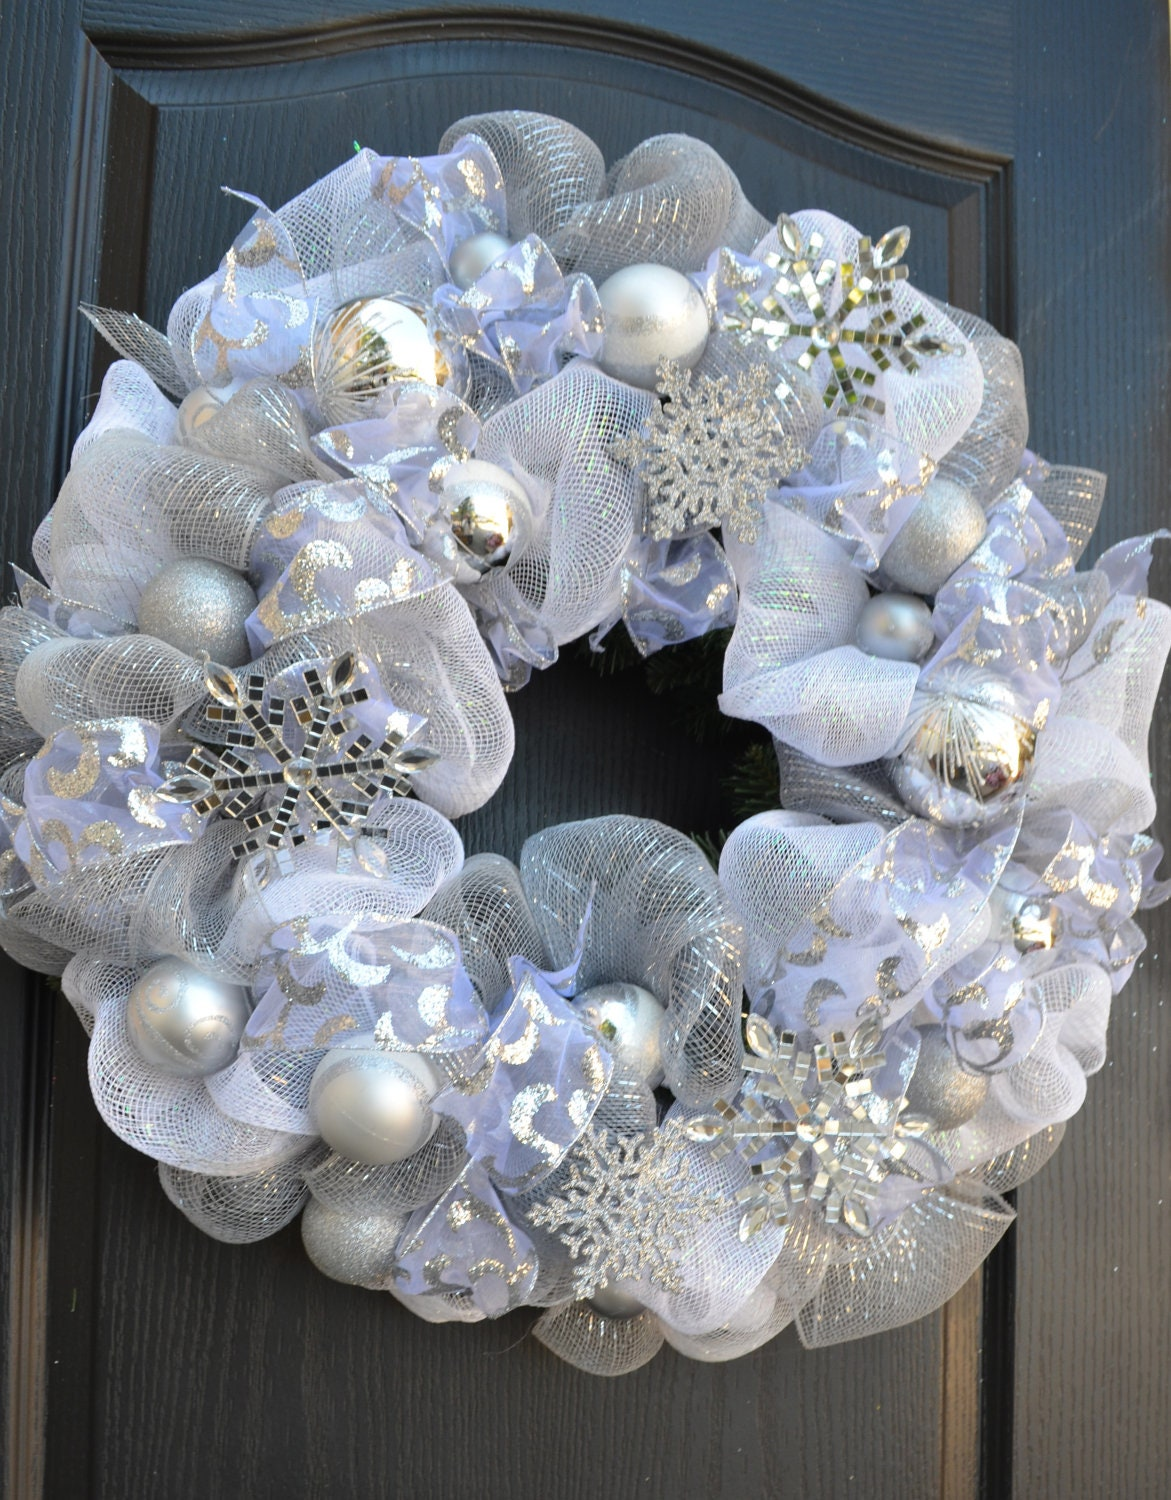 deco mesh white snowflake wreath silver and white tones